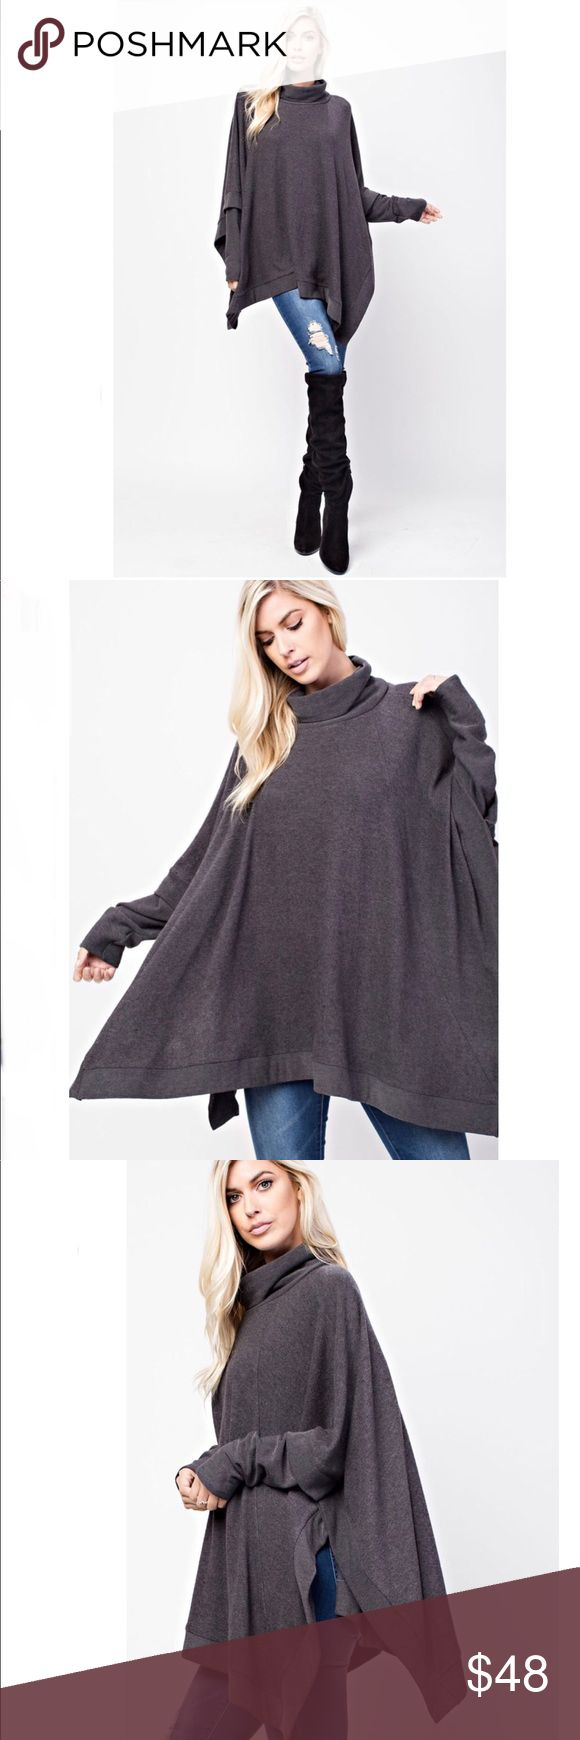 Long Sleeve Oversized Turtleneck Poncho Tunic HACCI BRUSHED, OVER SIZED TUNIC FEATURES A TURTLE NECK, LONG SLEEVES AND A SQUARE SHAPED SILHOUETTE.     79% POLY, 18% RAYON, 3% SPAN  Shop my closet and bundle 2+ items for a discount! 💕 143 Story Tops Tunics